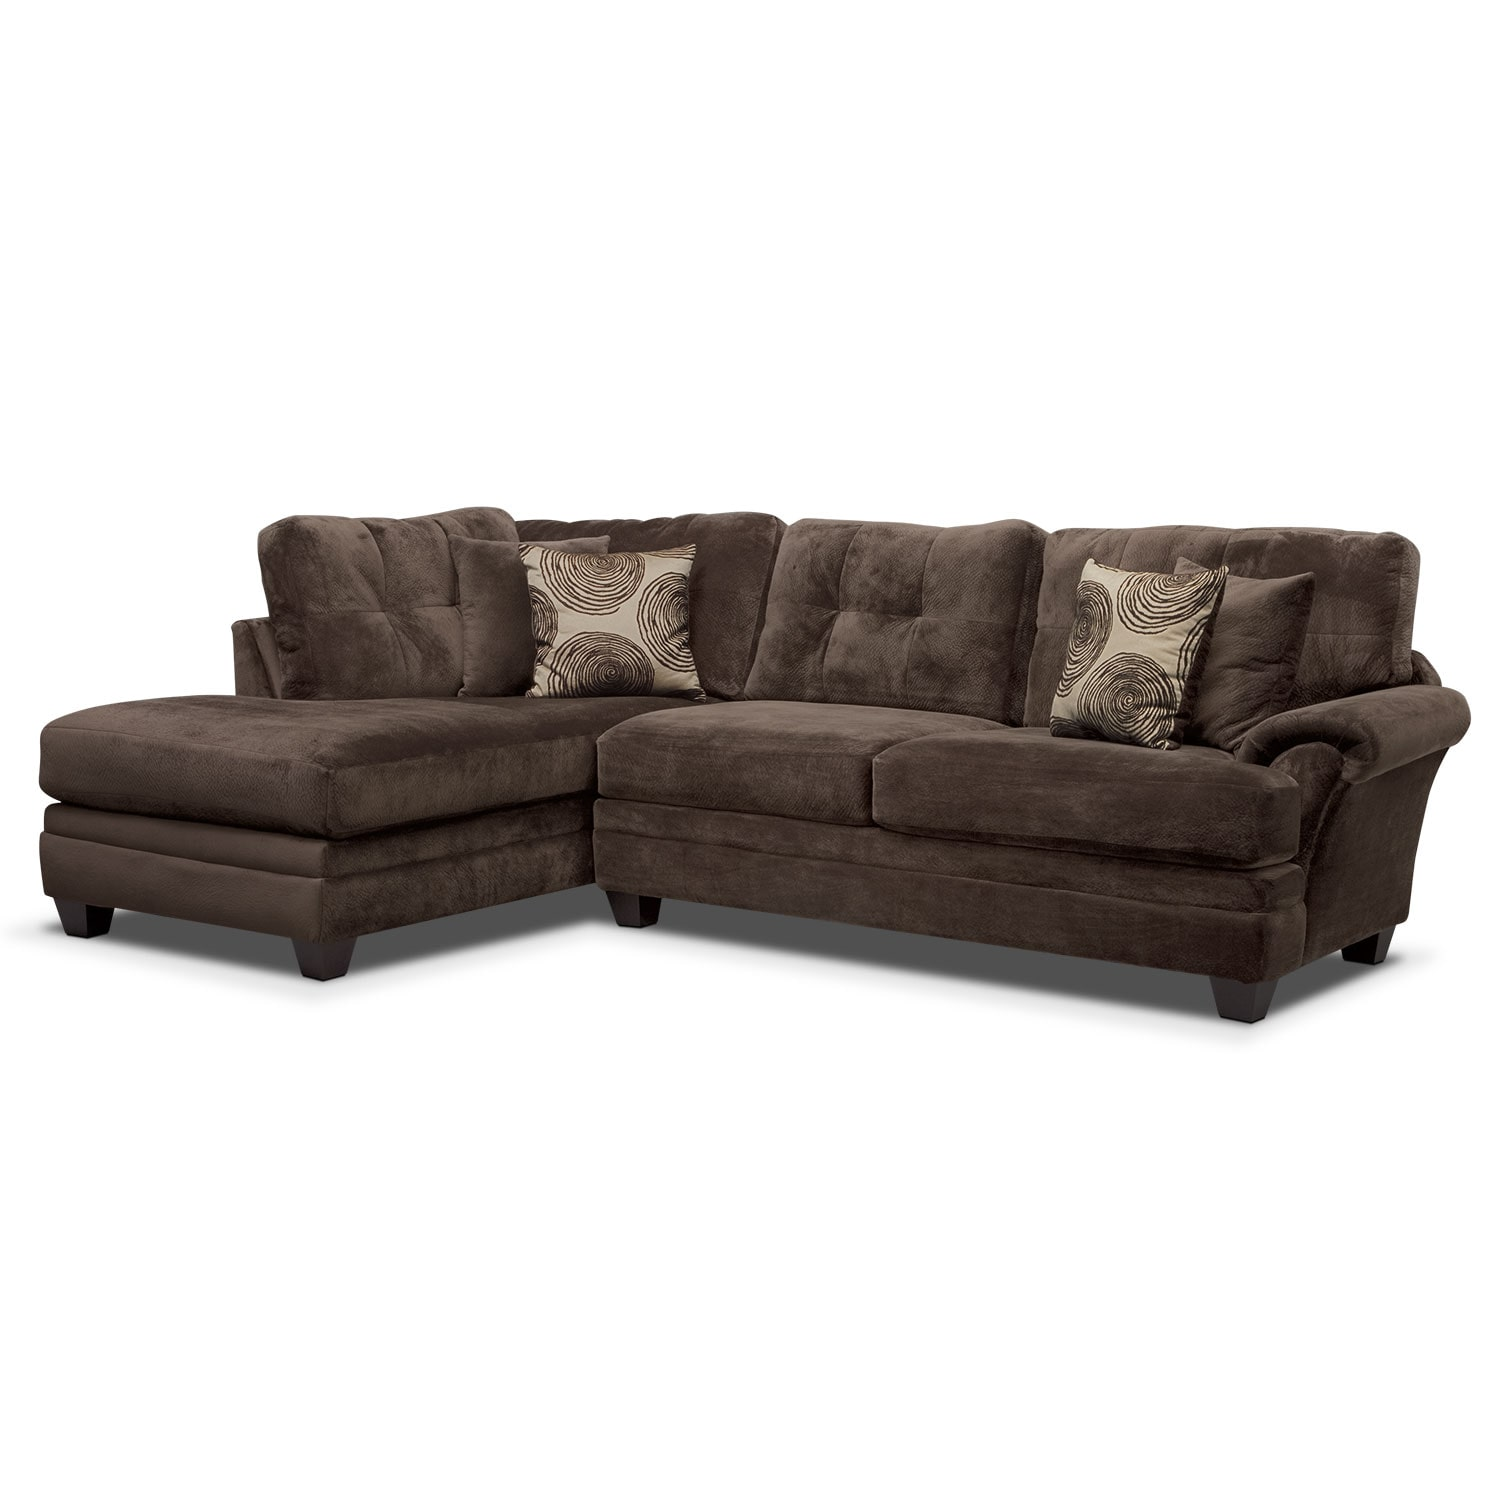 Cordelle 2-Piece Left-Facing Chaise Sectional - Chocolate